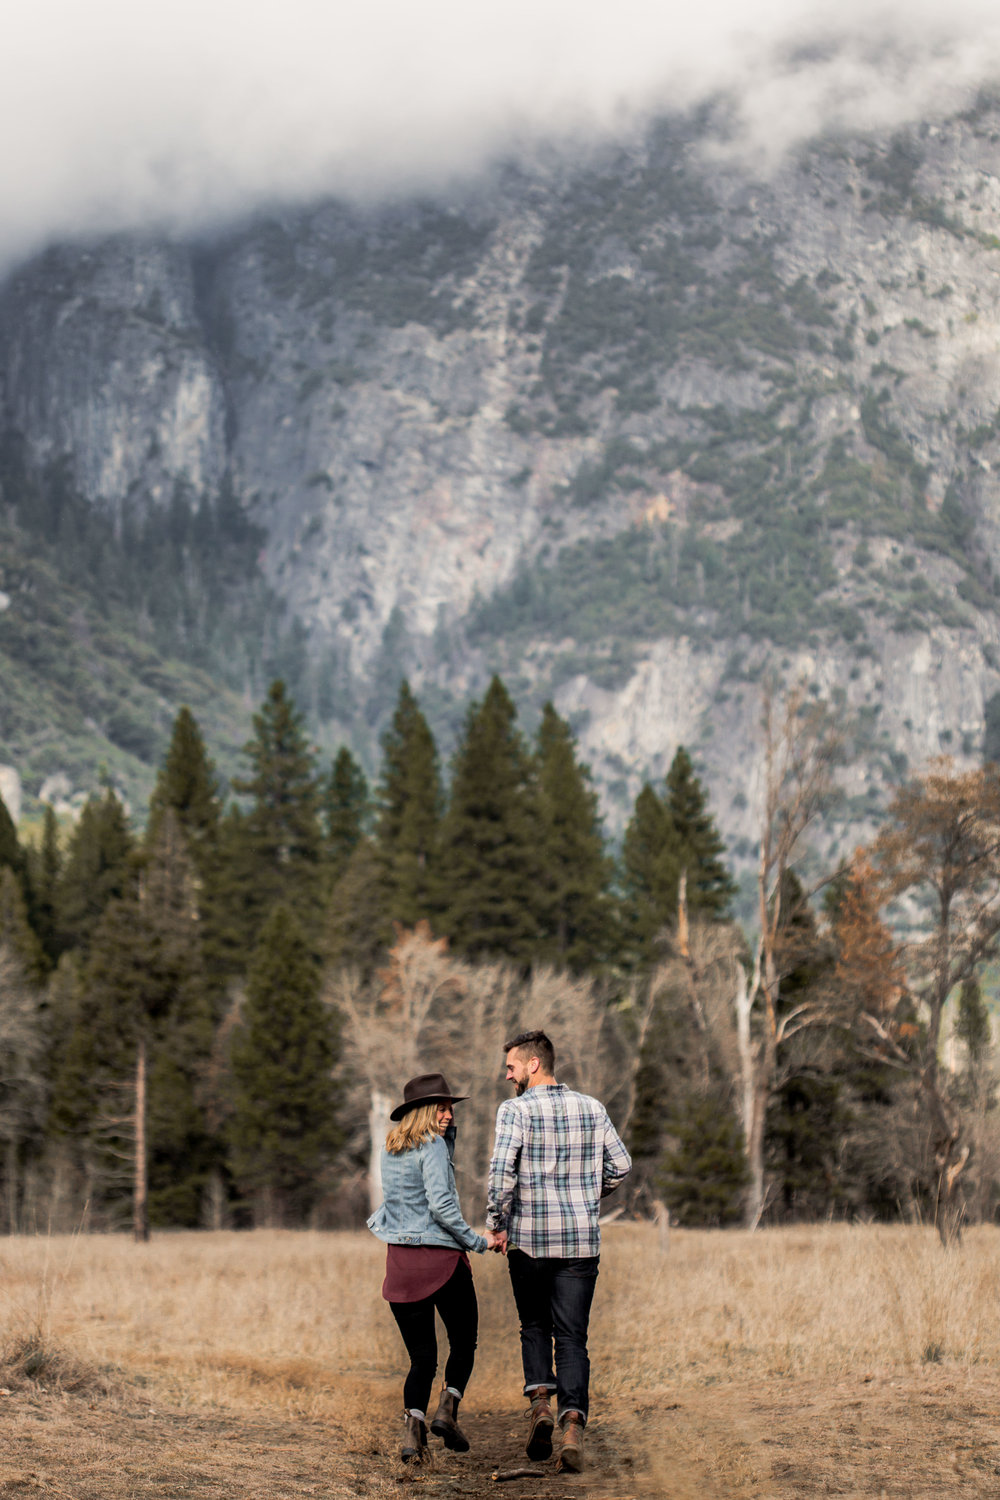 nicole-daacke-photography-yosemite-national-park-engagement-session-yosemite-valley-adventure-session-california-13.jpg